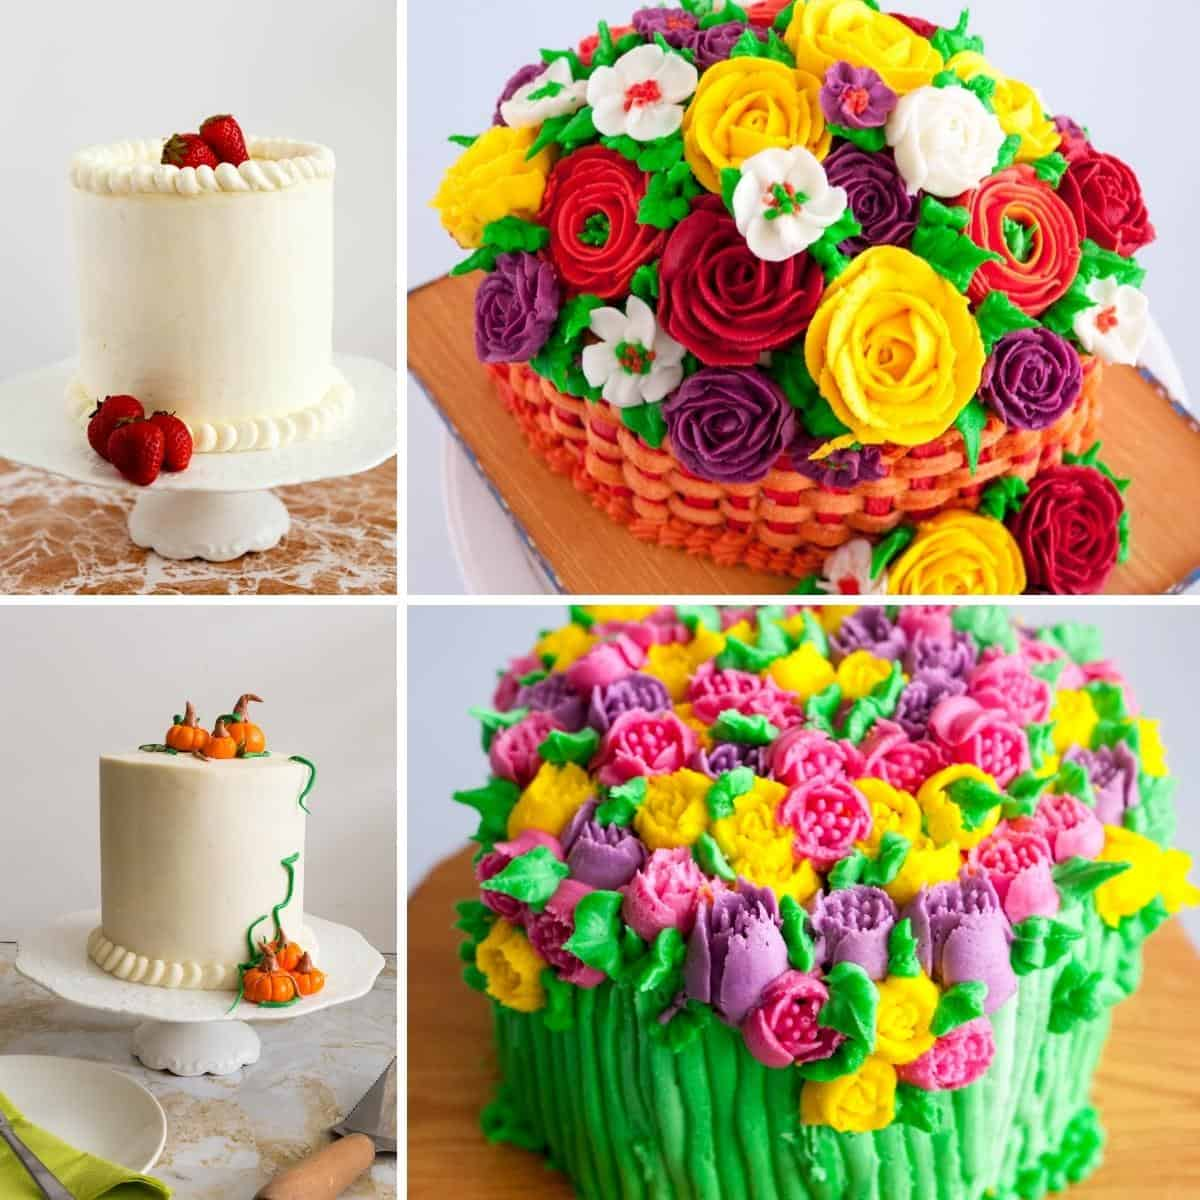 Buttercream frosted cakes collage.